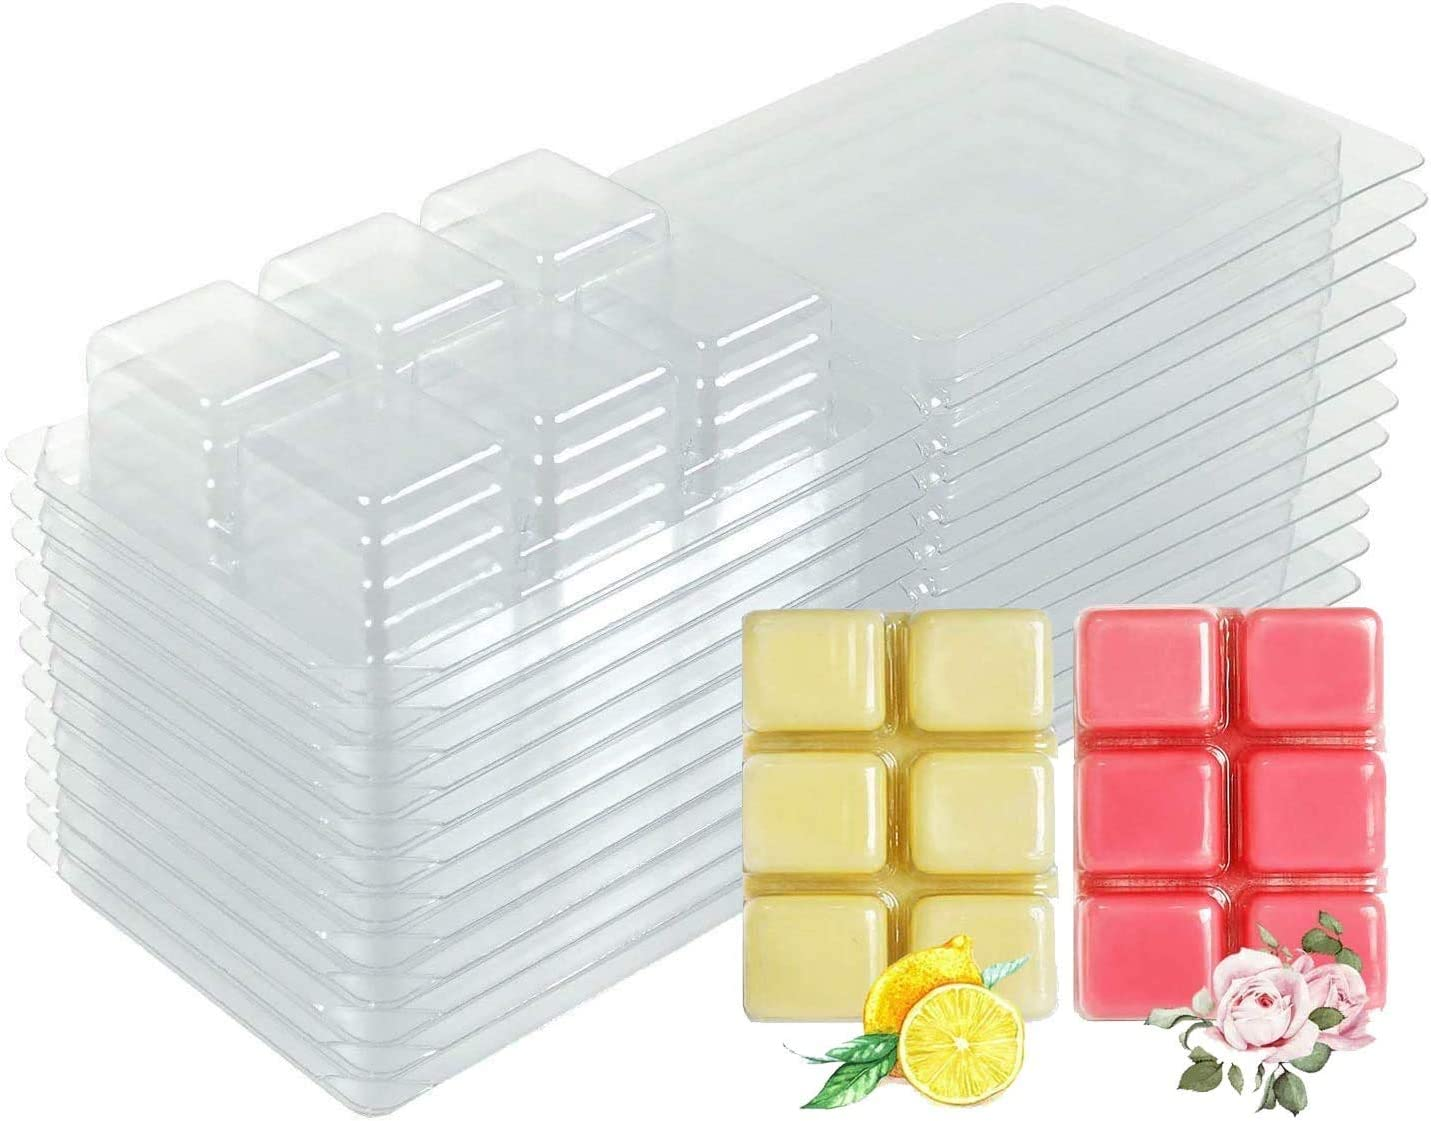 Howemon Limited price sale 100 Pack Clear Empty Plastic Wax Wic Melt Superlatite Clamshells for